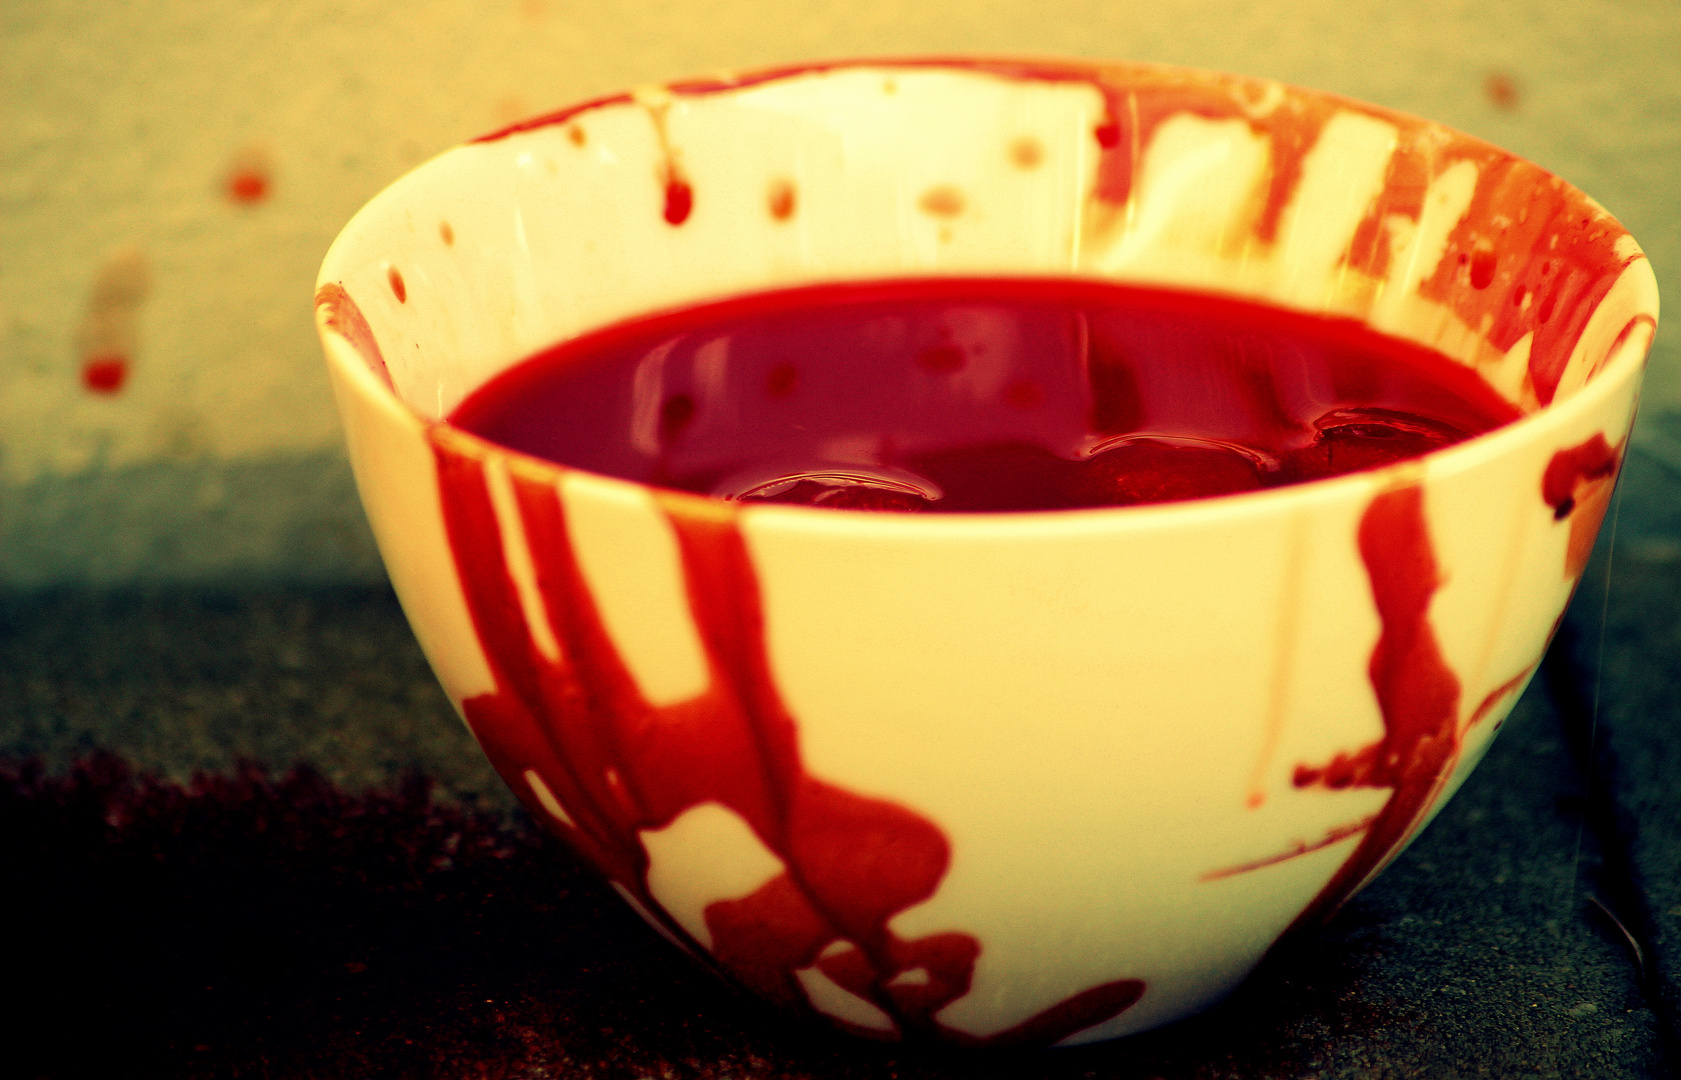 Blood with pieces in a bowl